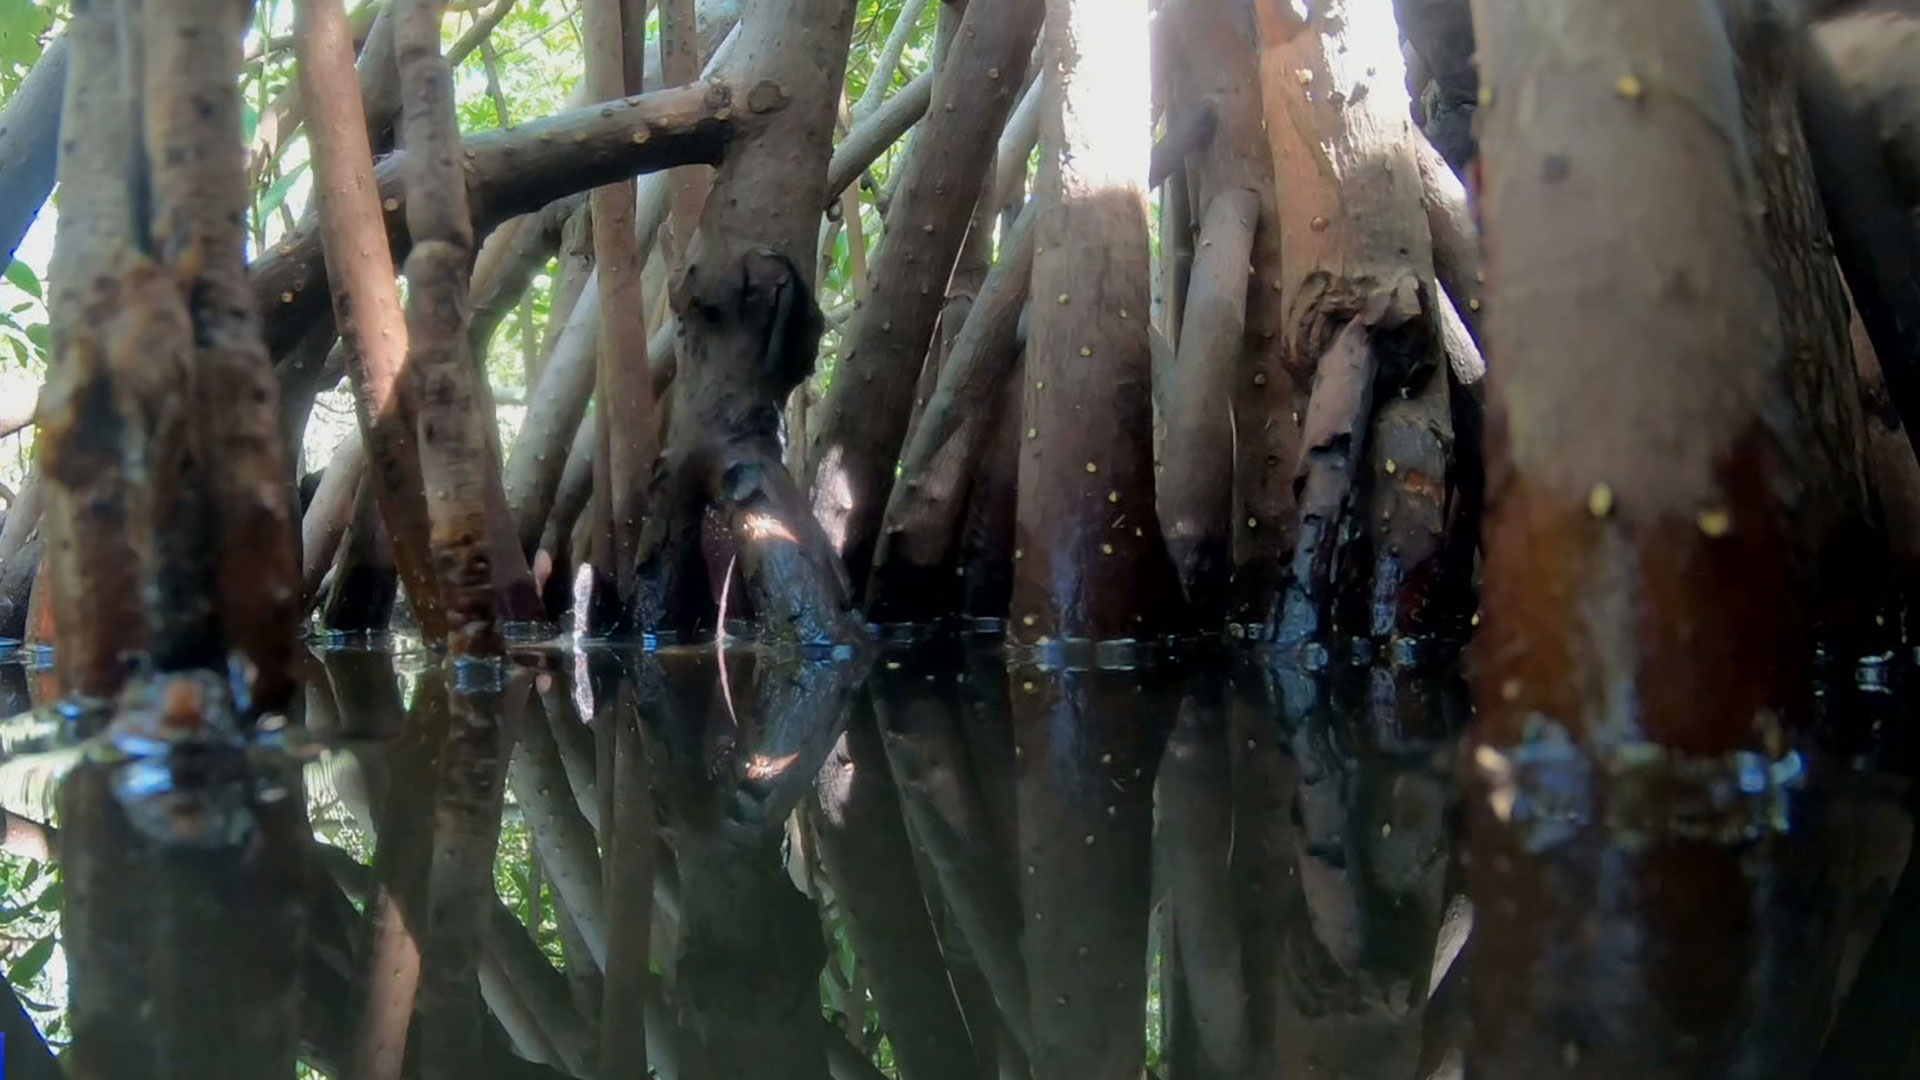 Columbian-mangroves